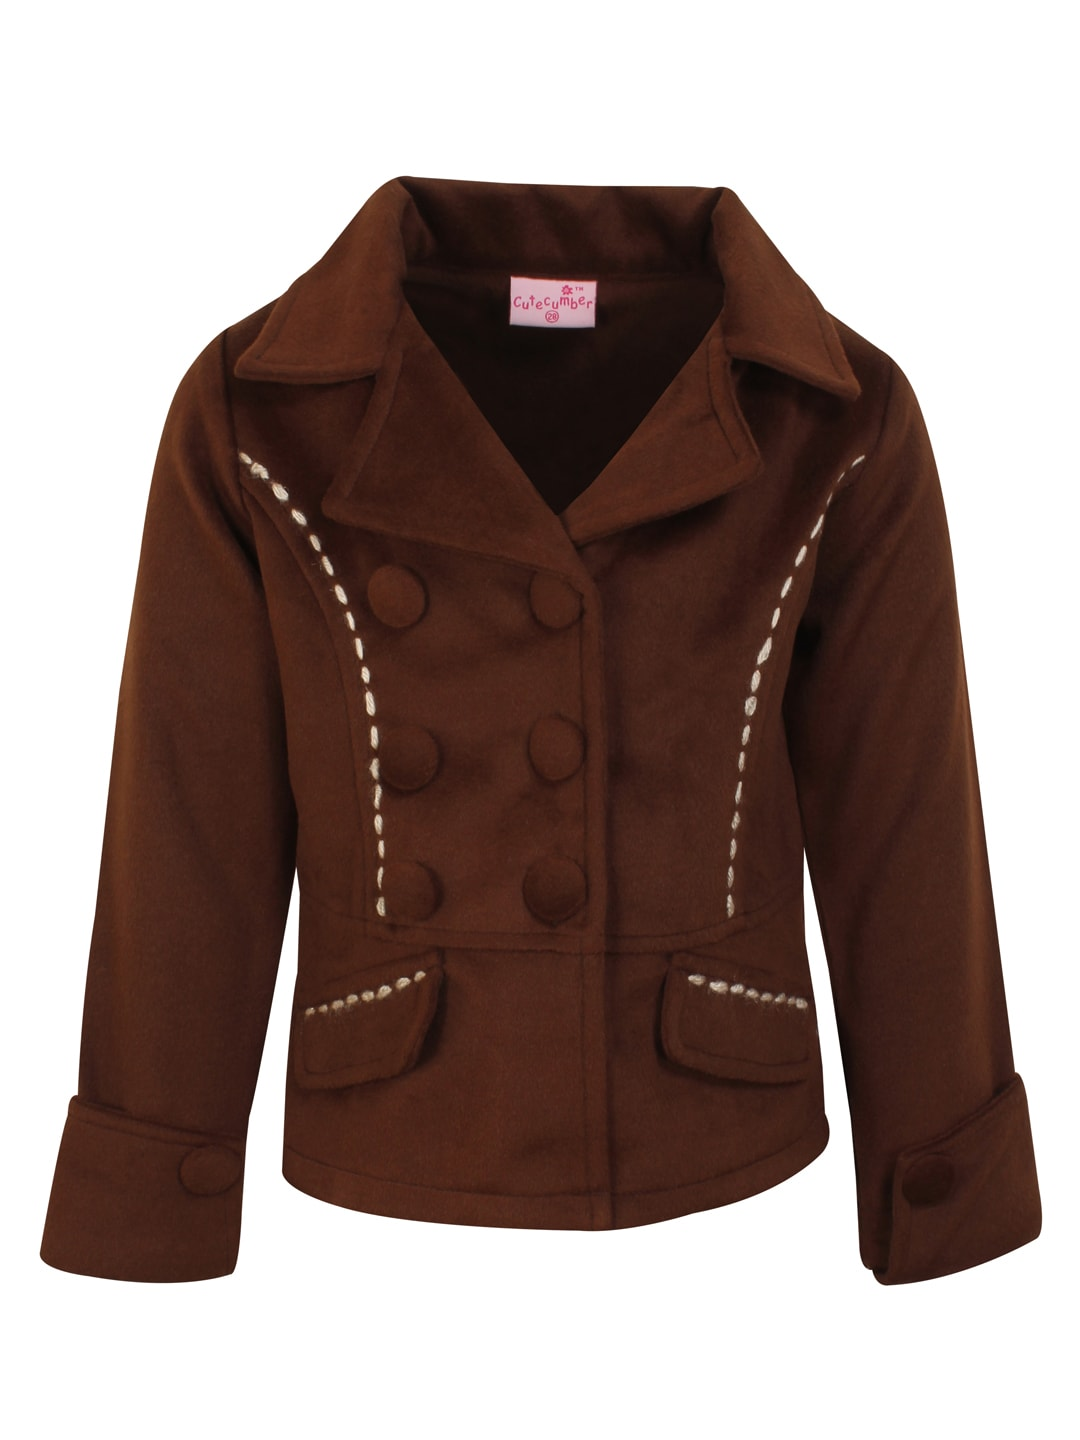 f905d0877c39 Girls Boys Coats - Buy Girls Boys Coats online in India